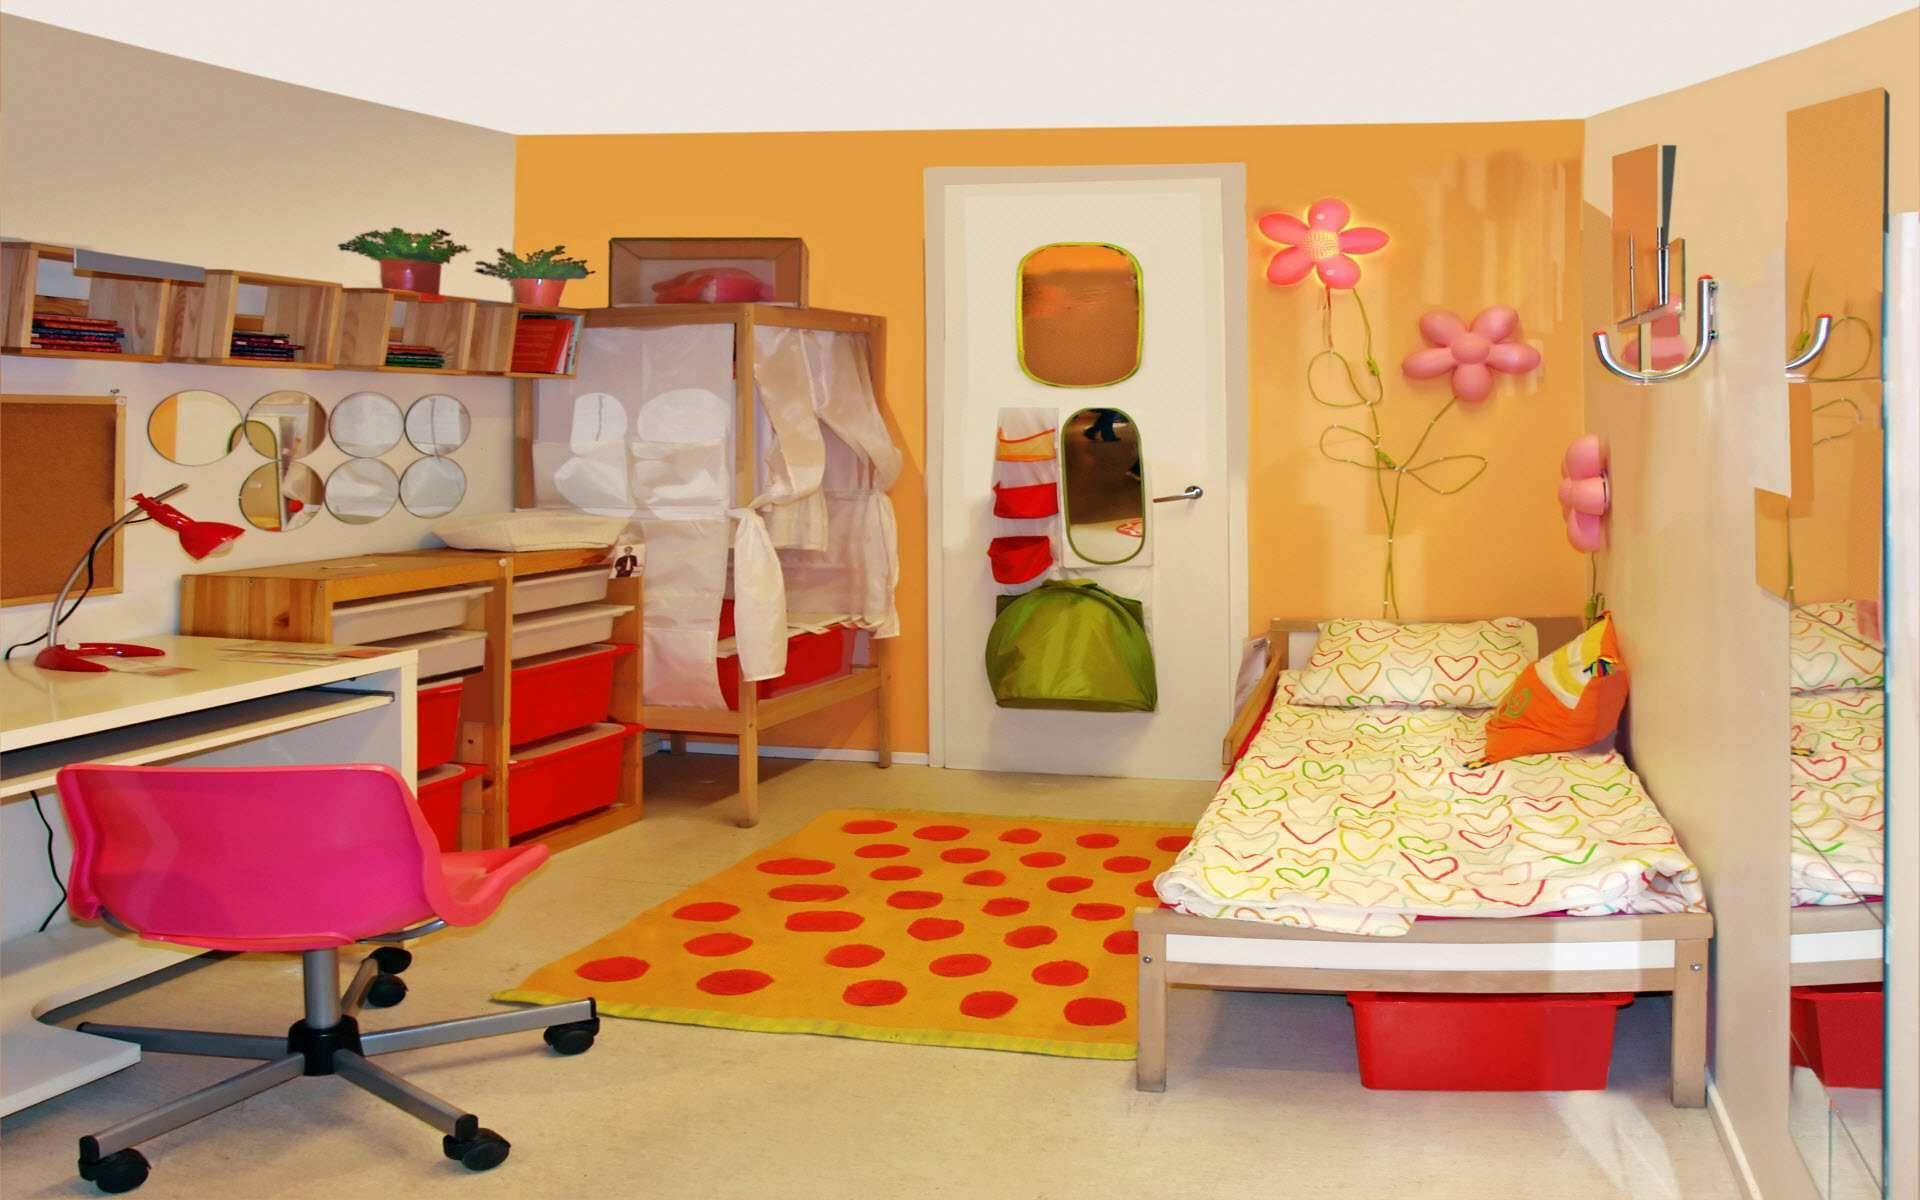 Kids Room Colorful Children Bedroom Design Ideas With Furniture Single Bed And Pillow Red Yellow Rugs Study Lamp On The